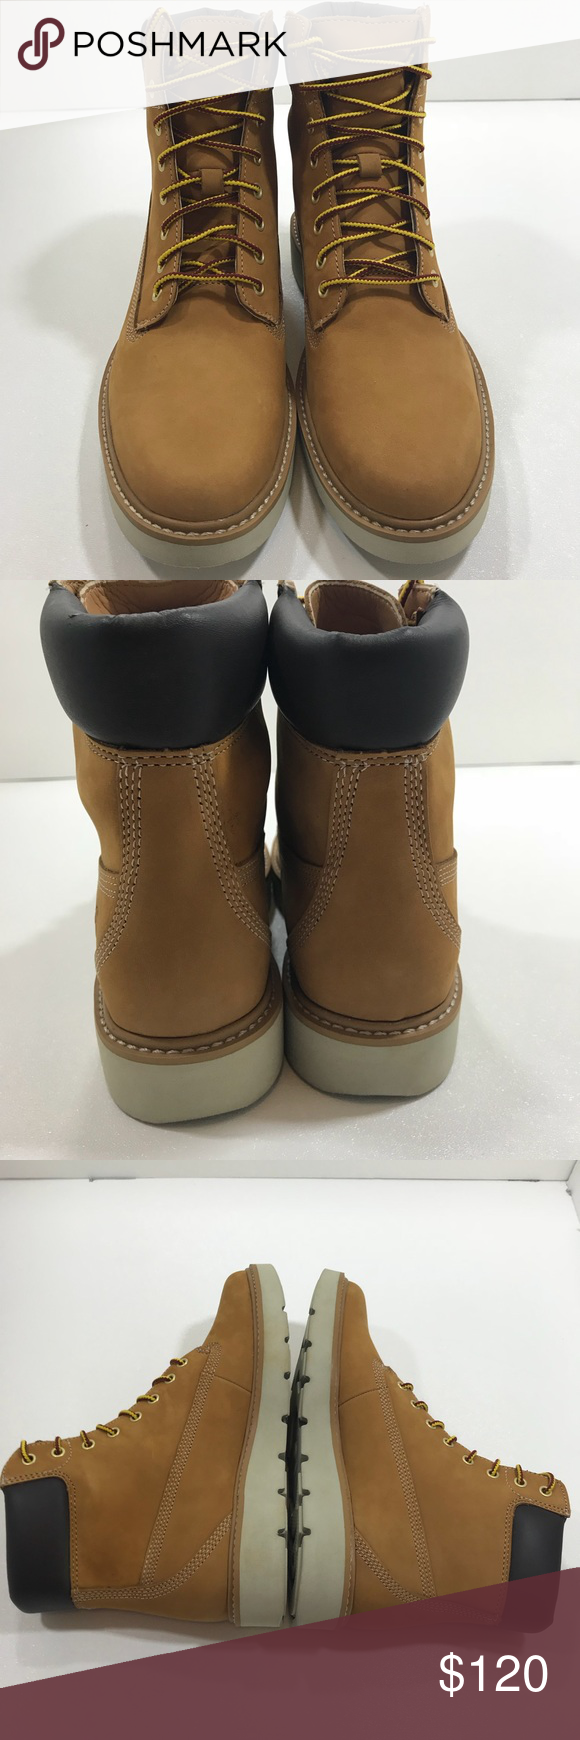 2eae54f4c6d Timberland Women 8 1 2 Kenniston 6-in. Boot Nubuck Timberland Kenniston 6  inch Wheat Nubuck Sensorflex Sole Women Boots Size 8 1 2. NWOT. New without  tags.